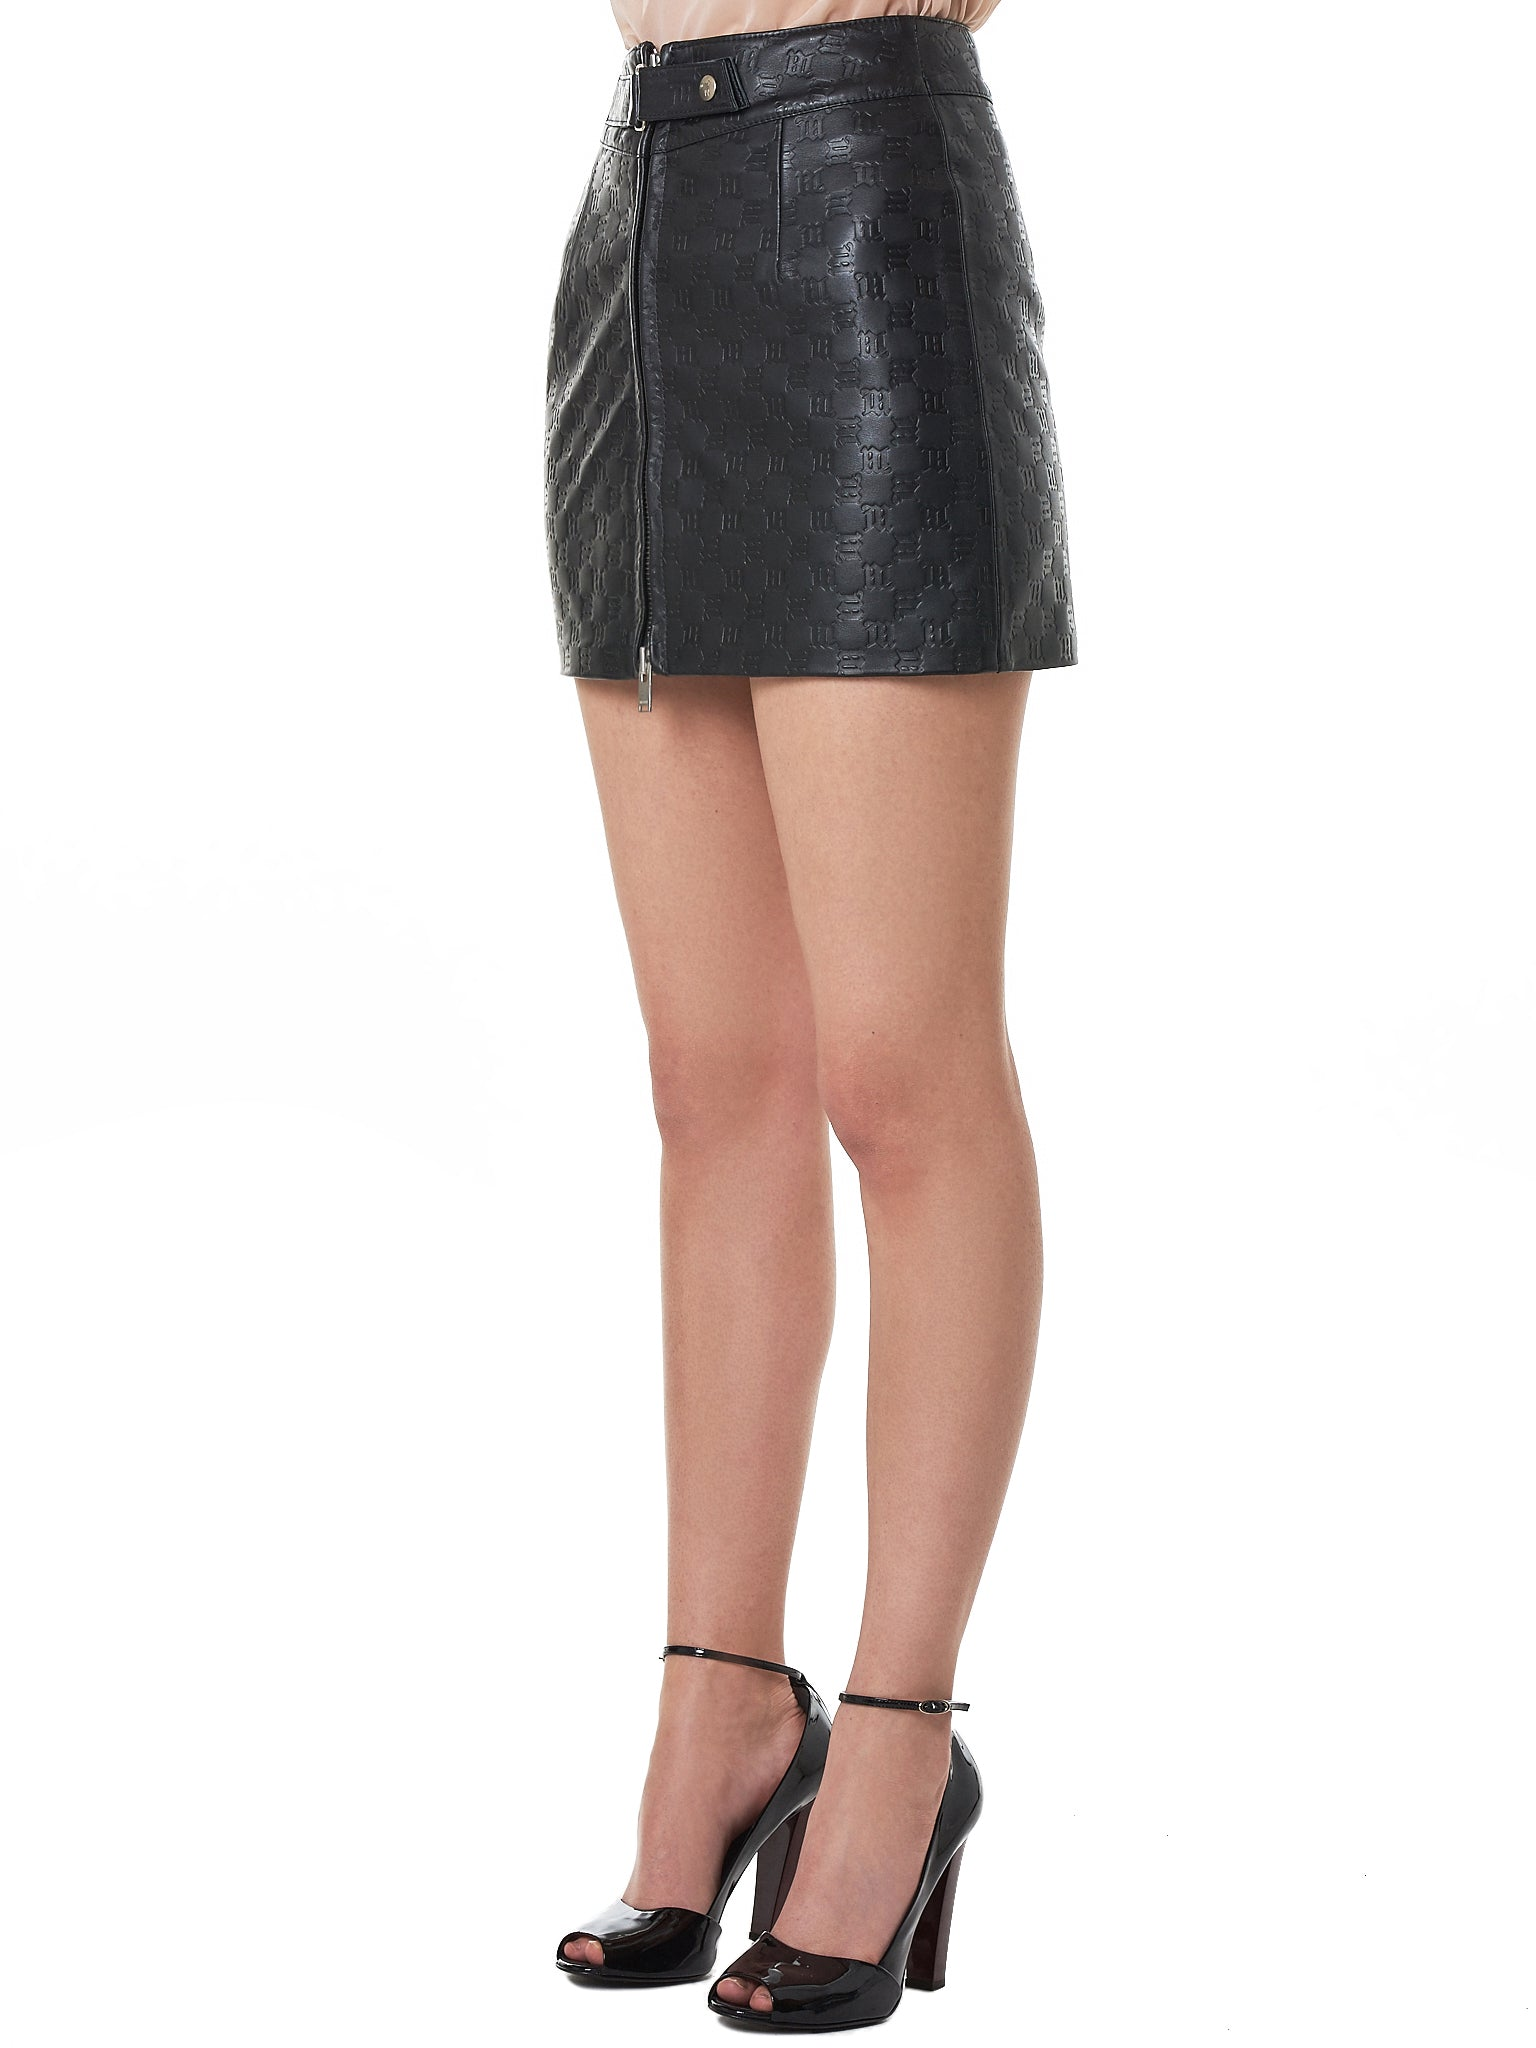 MISBHV Skirt - Hlorenzo Side